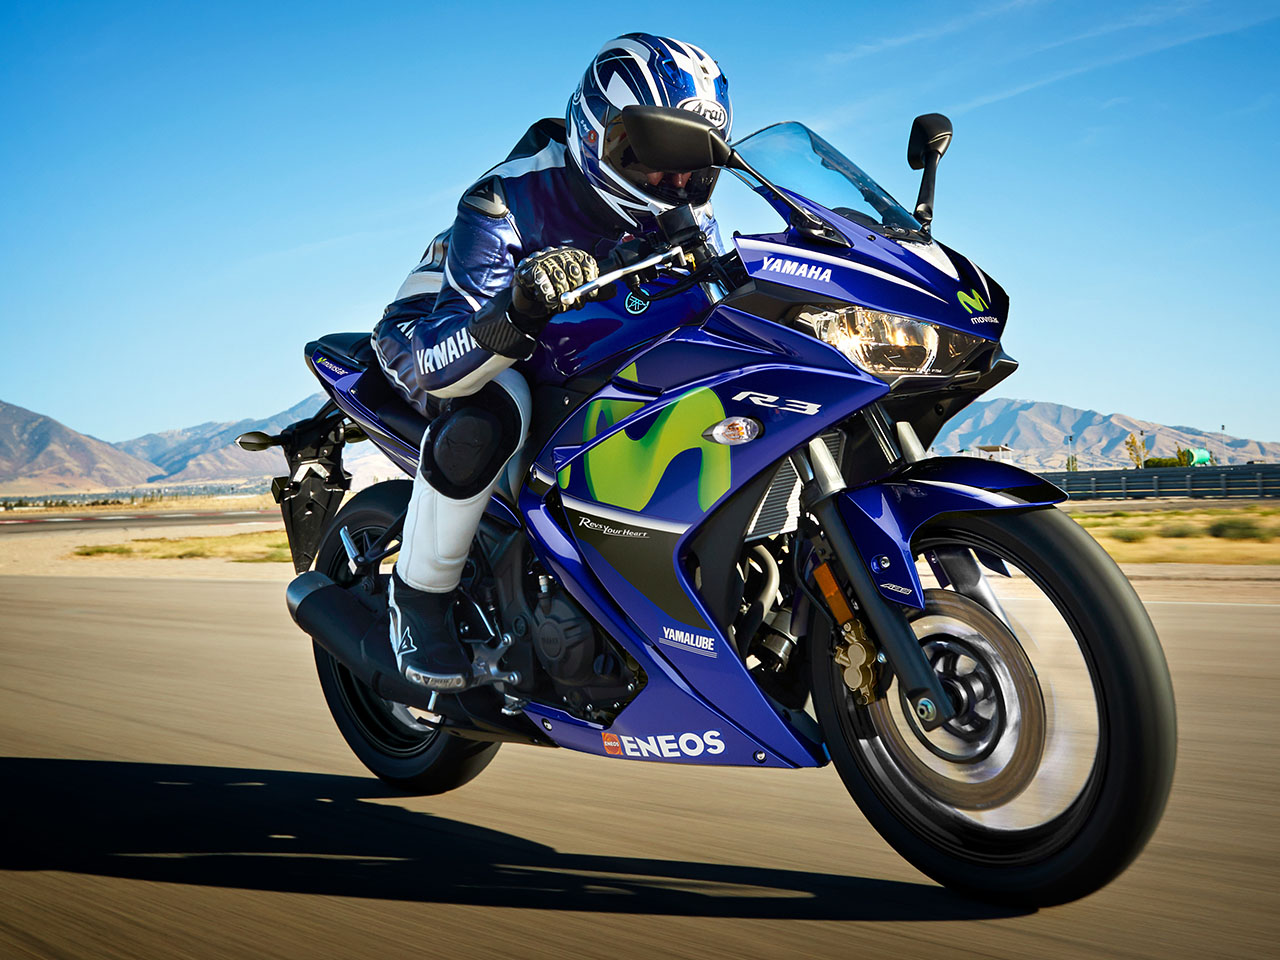 Yamaha YZF-R3SP Movistar motorcycle riding on the road